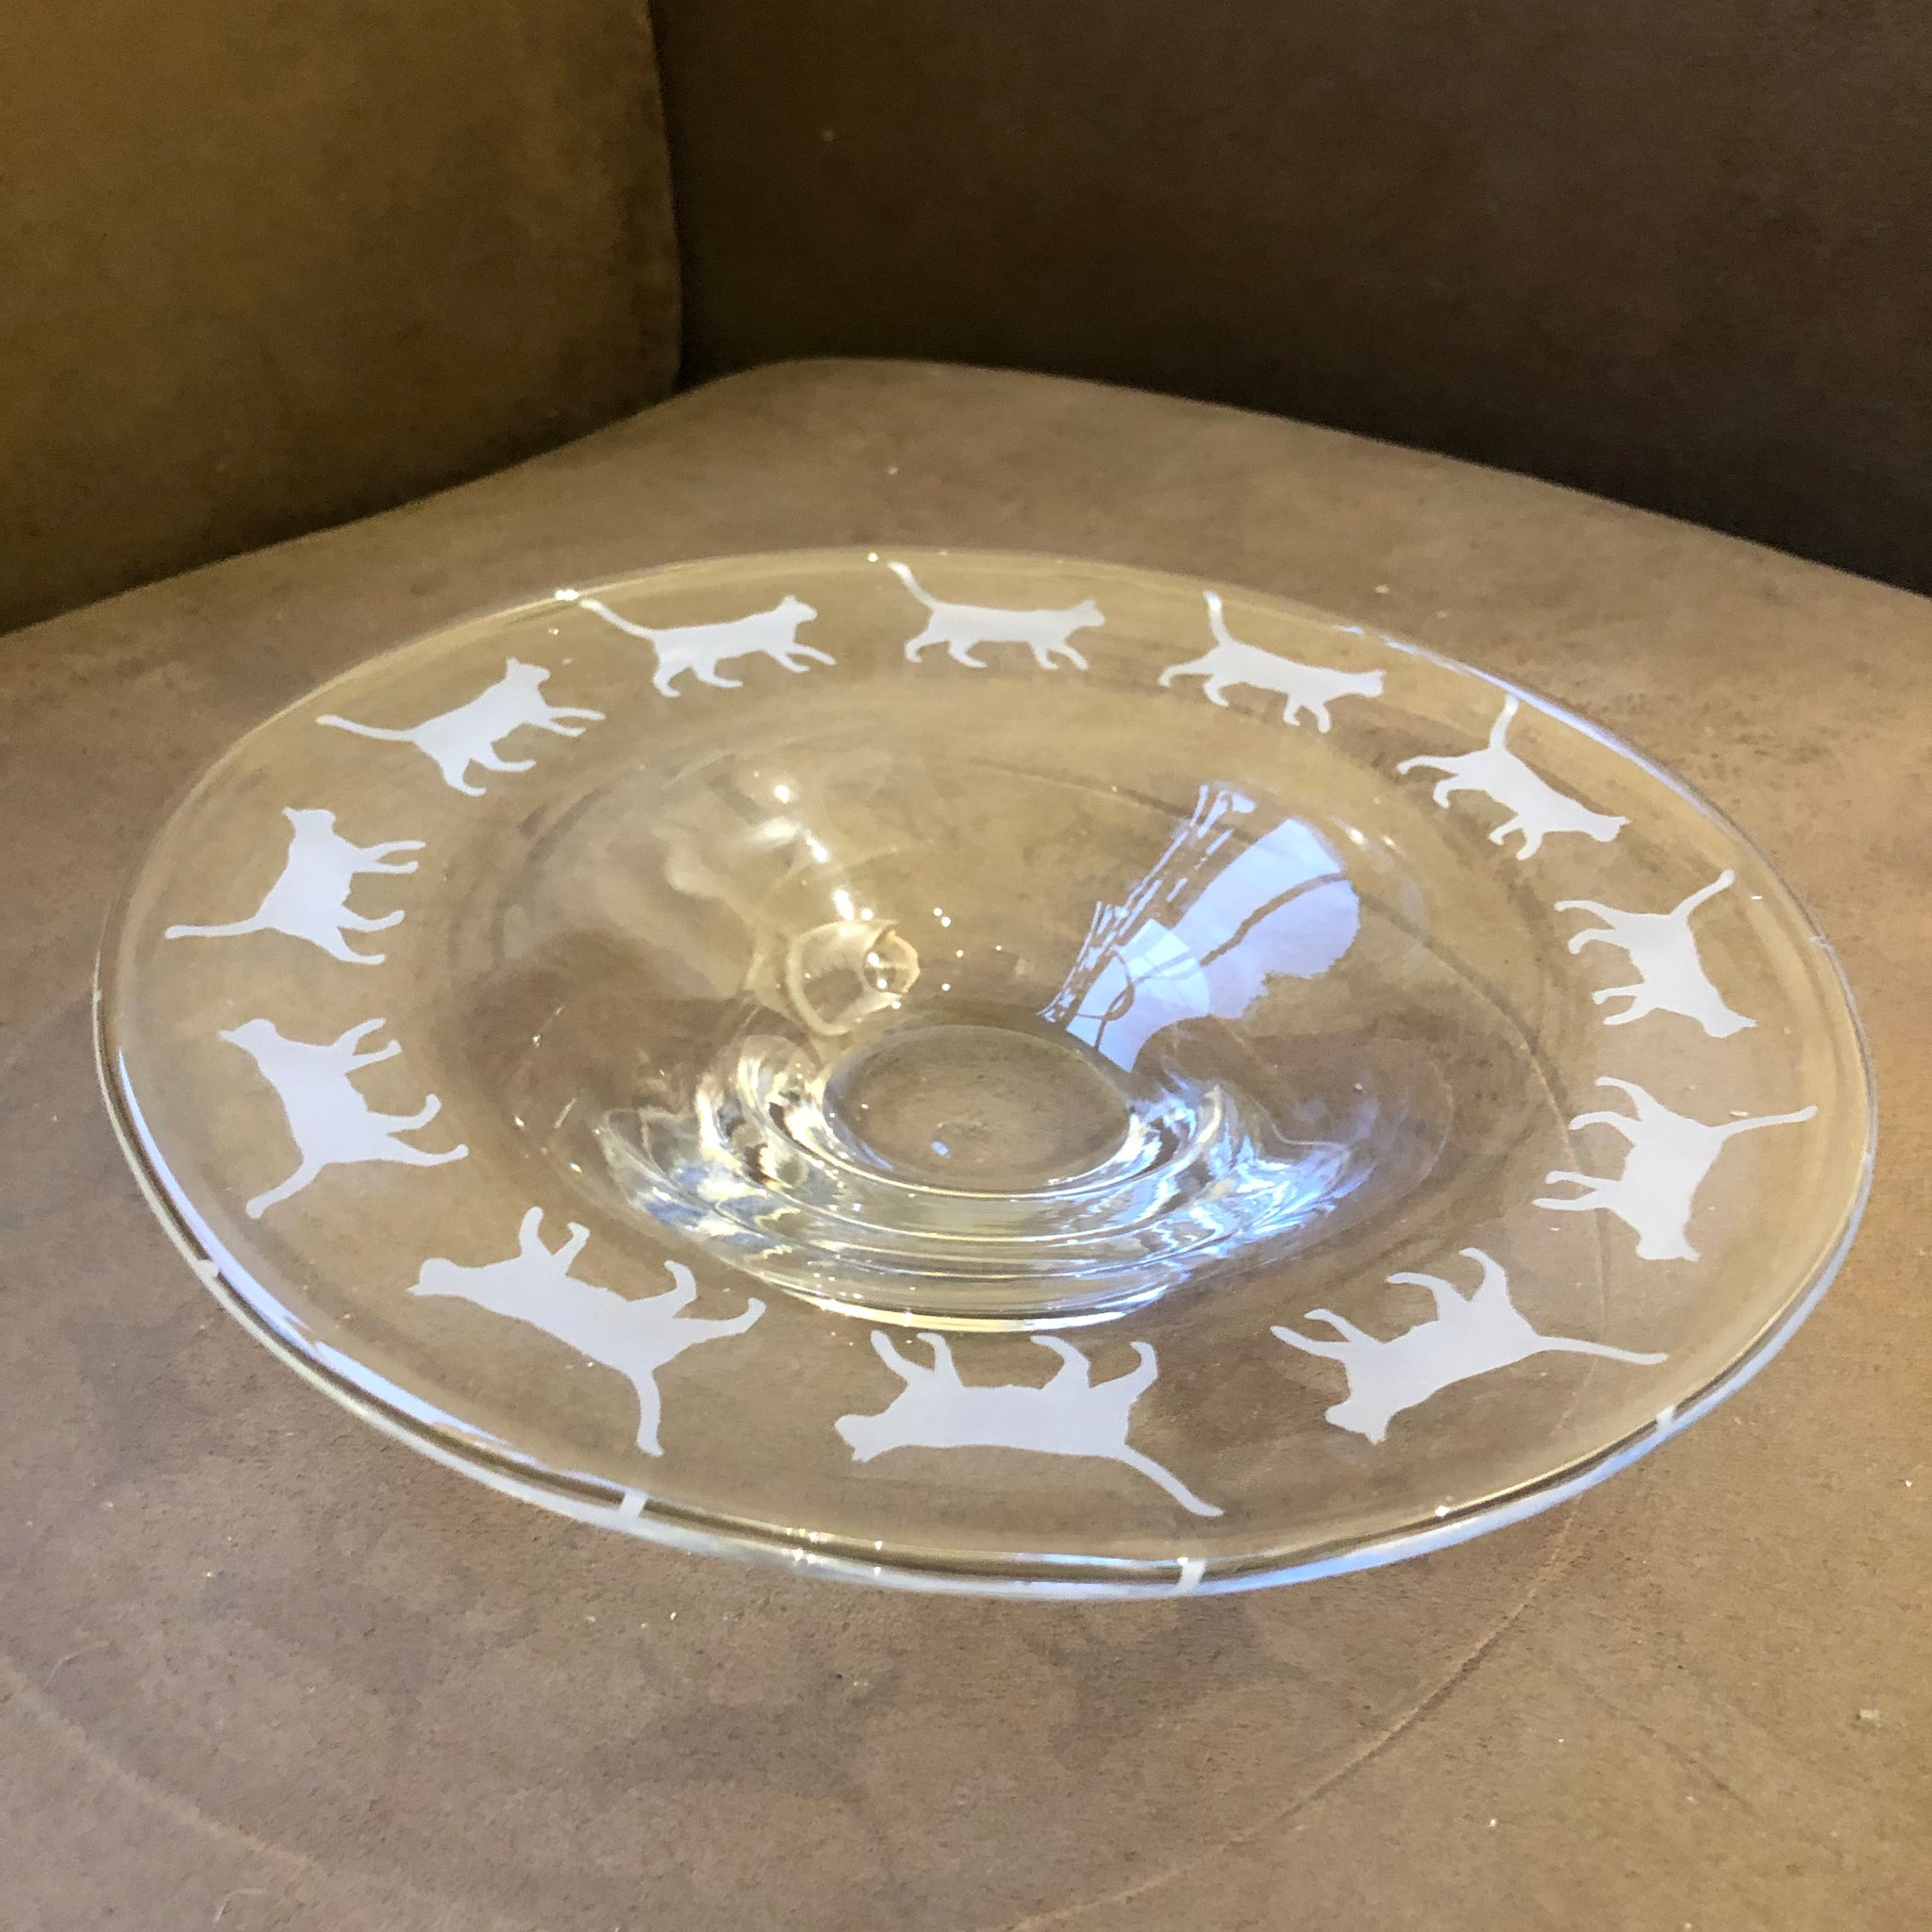 Walking Cat Etched Glass Platter, 25cm